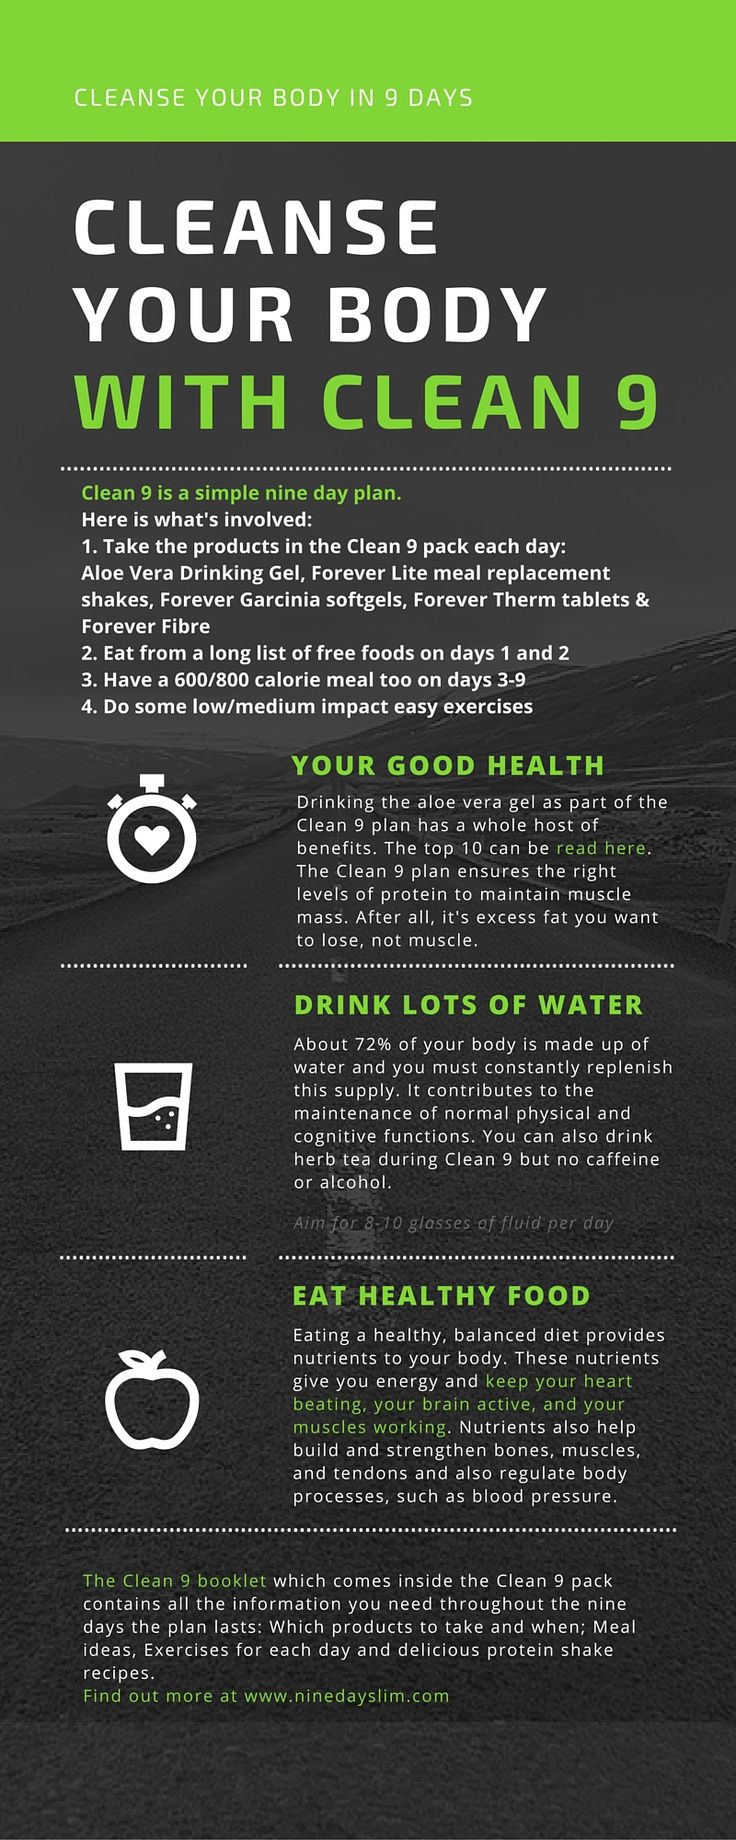 How Clean 9 works - hope you find it useful! #Cleanse #LoseWeightFast everything you need to start your Weight Management Programme #stylenovi